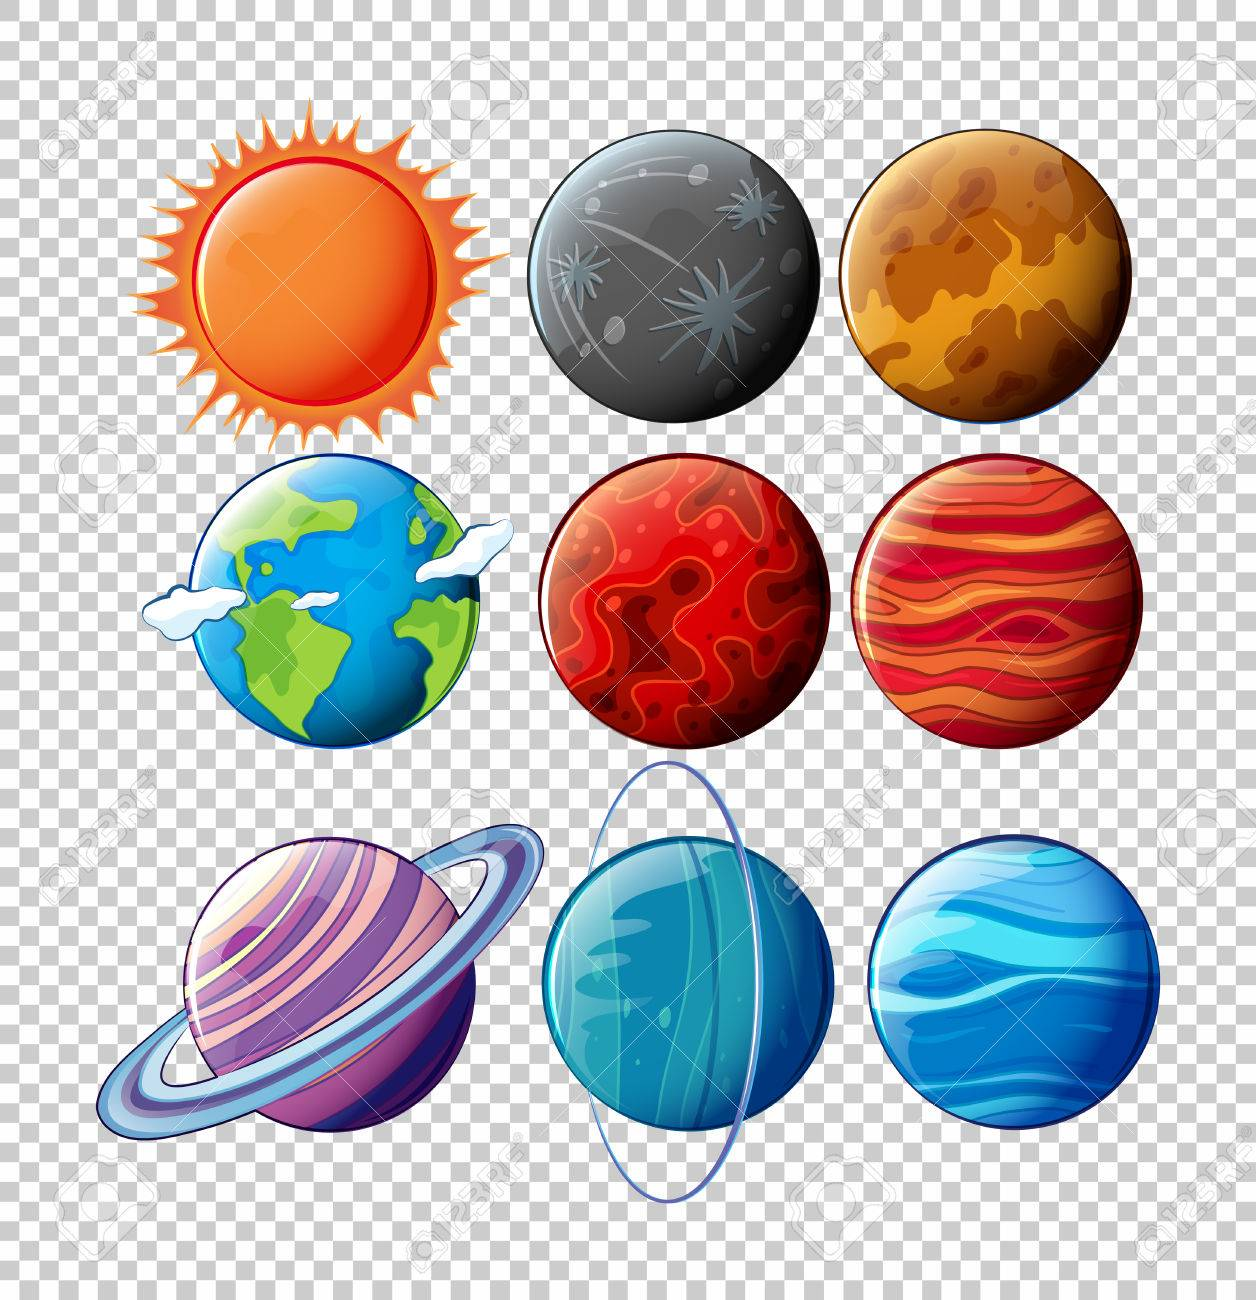 hight resolution of different planets in solar system on transparent background illustration stock vector 78779518